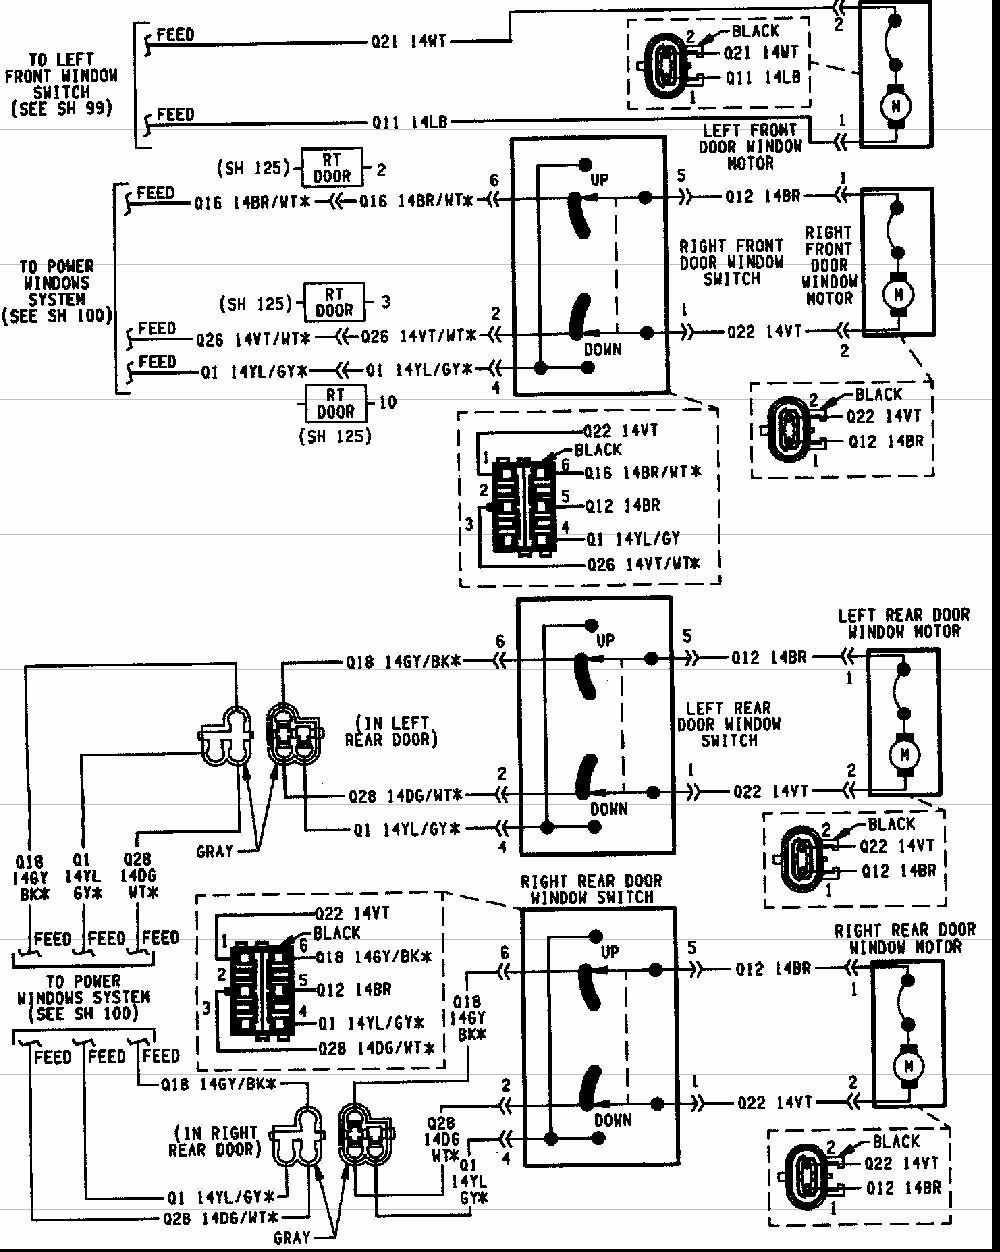 medium resolution of 99 jeep cherokee wiring harness auto diagrams instructions jeep xj wiring auto diagrams instructions 2002